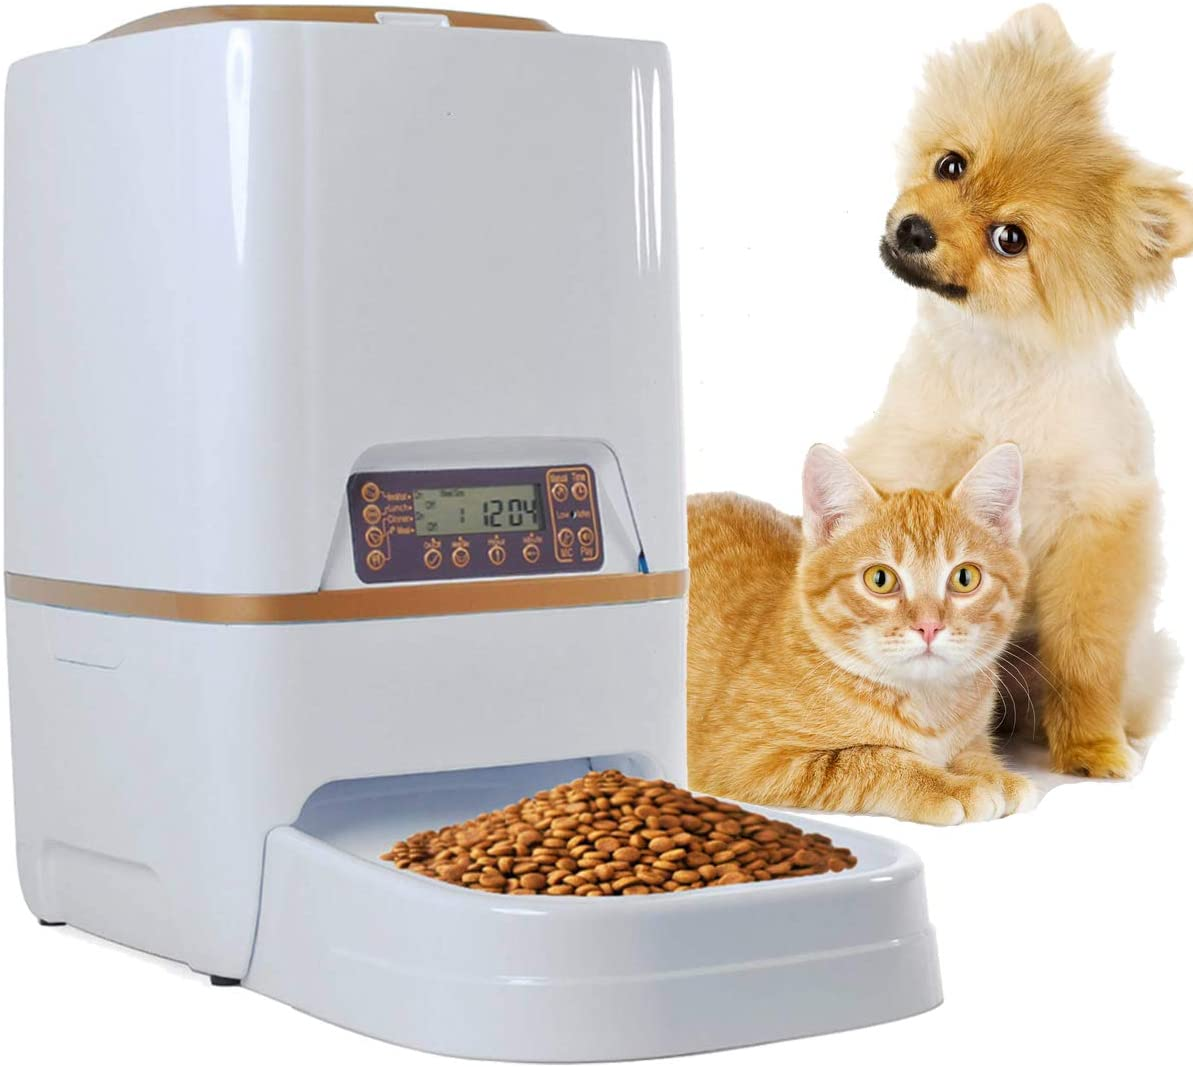 Sailnovo 6L Automatic Pet Feeder Food Dispenser for Dogs, Cats Small Animals Features Distribution Alarms, Portion Control Voice Recording Timer Programmable Up to 4 Meals a Day